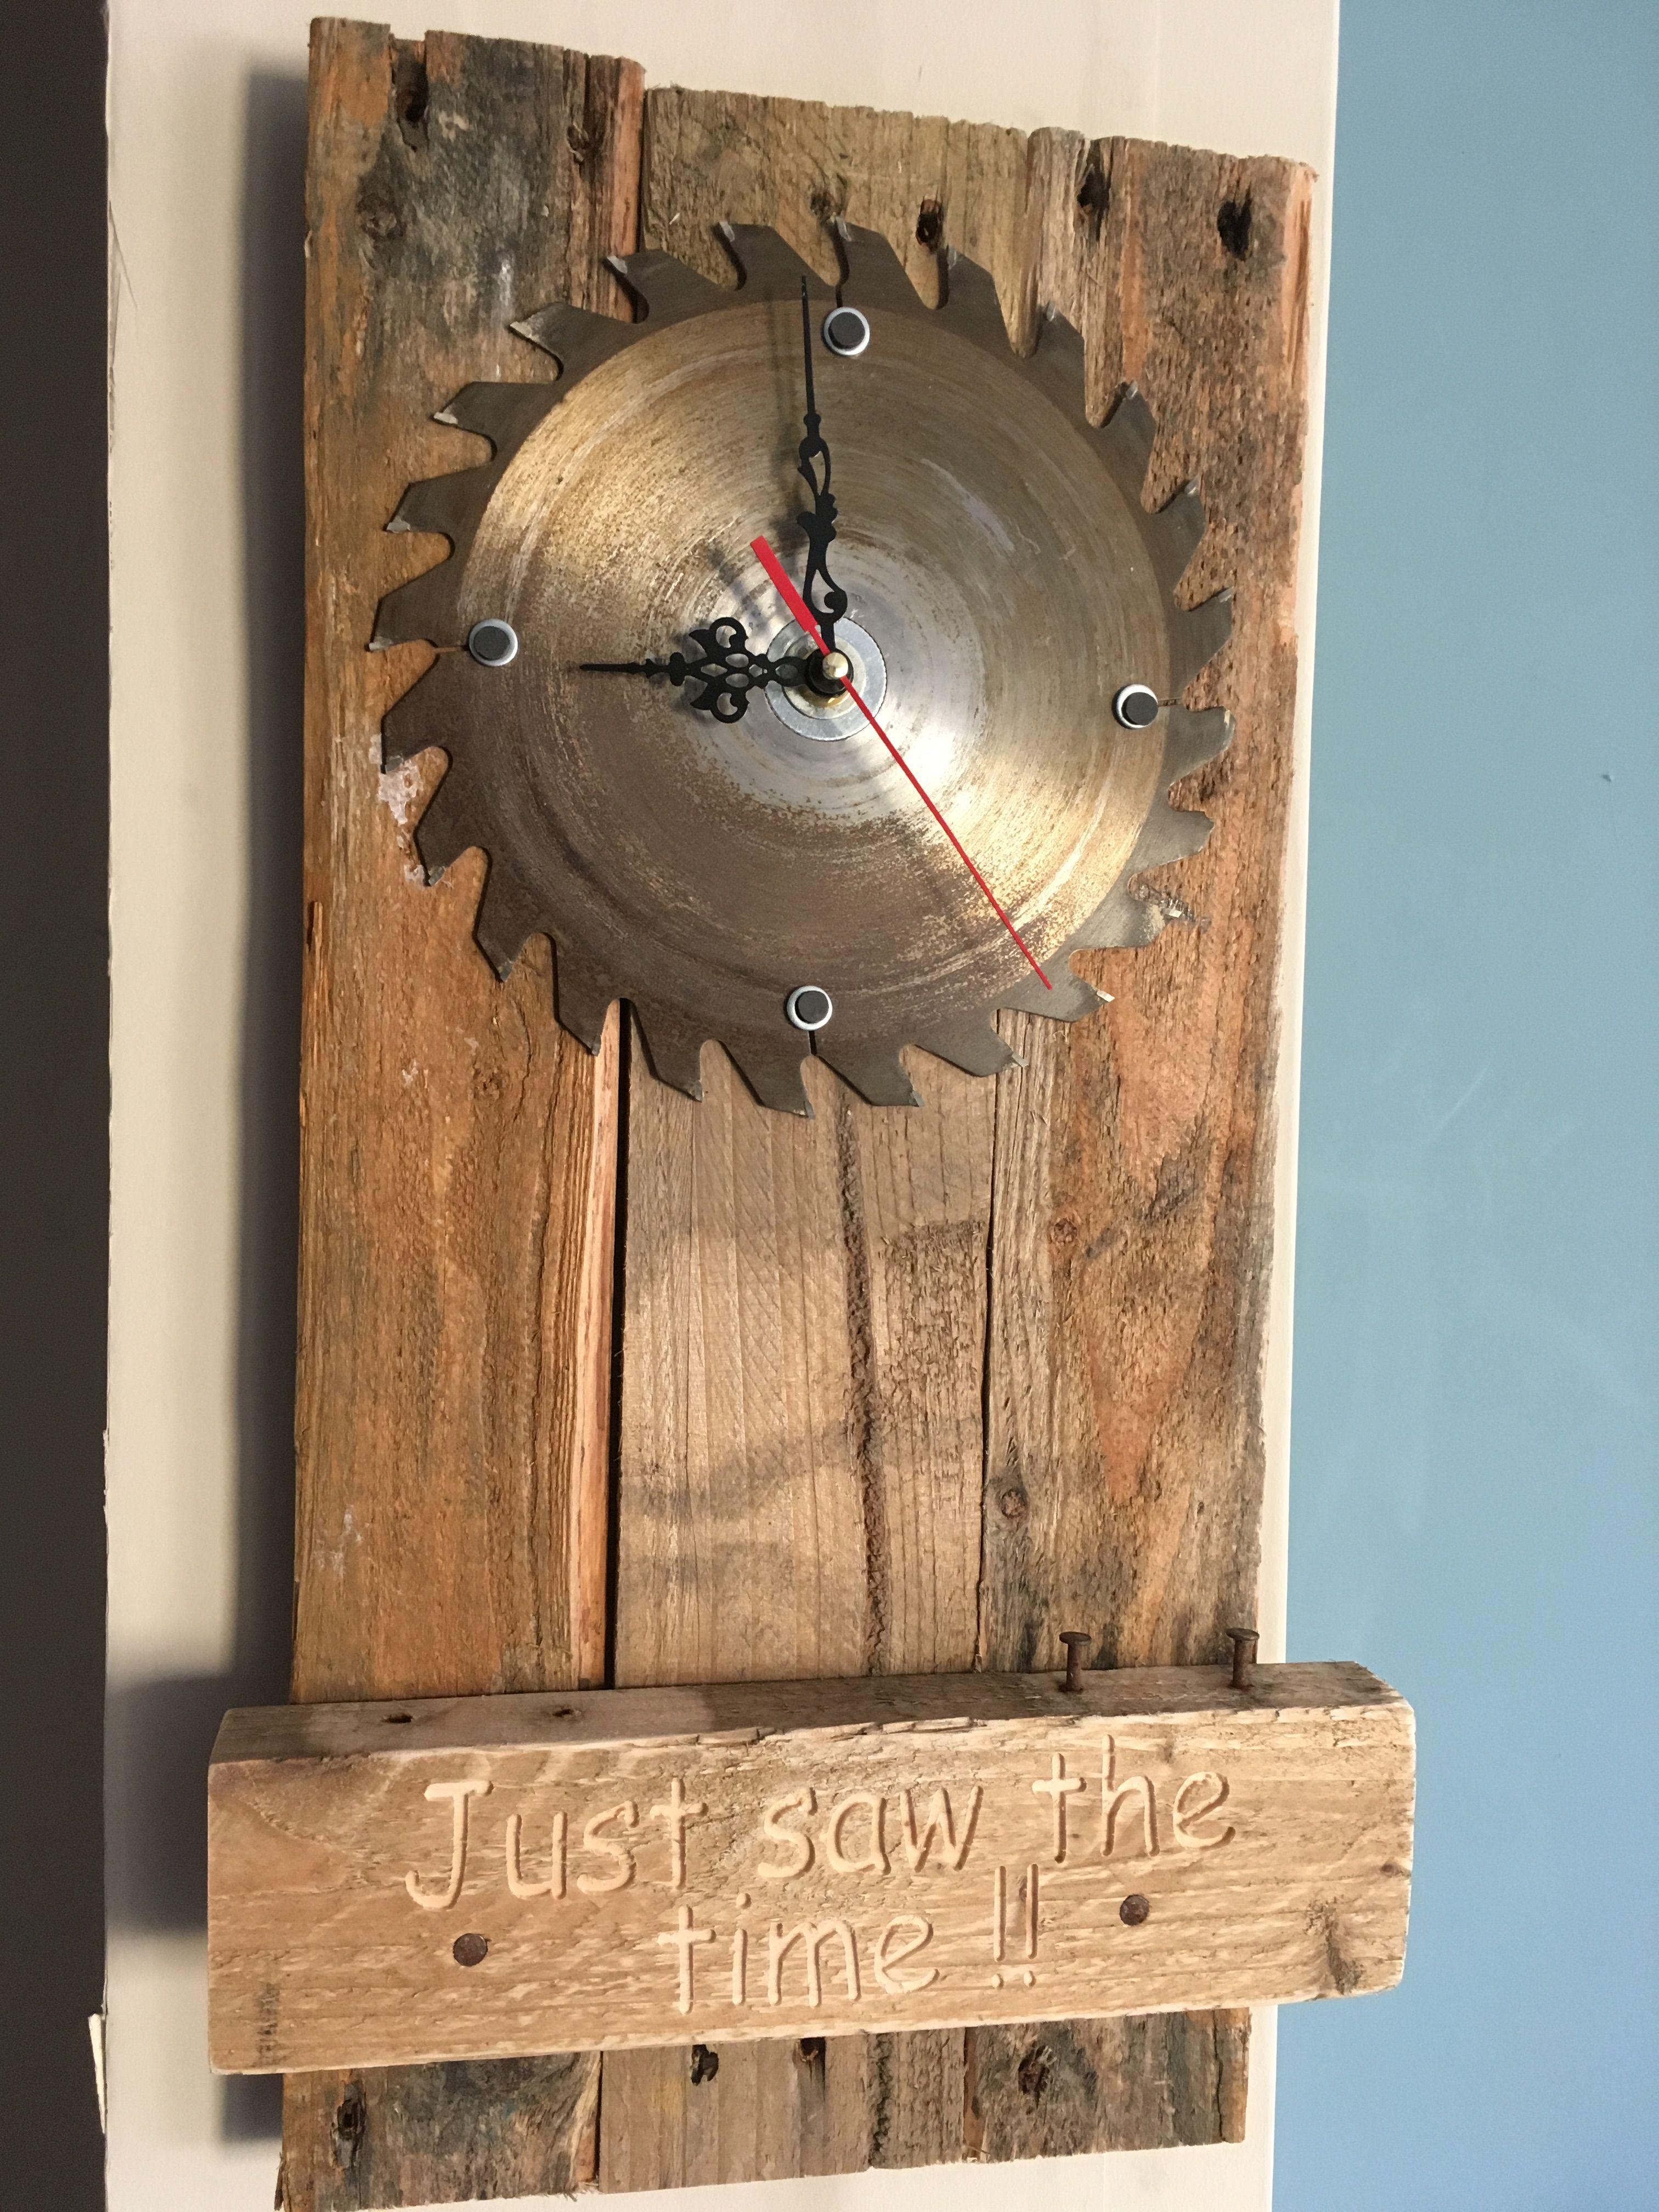 Holzuhr Selber Bauen Circular Saw Blade As A Pallet Wood Wall Clock With The Words